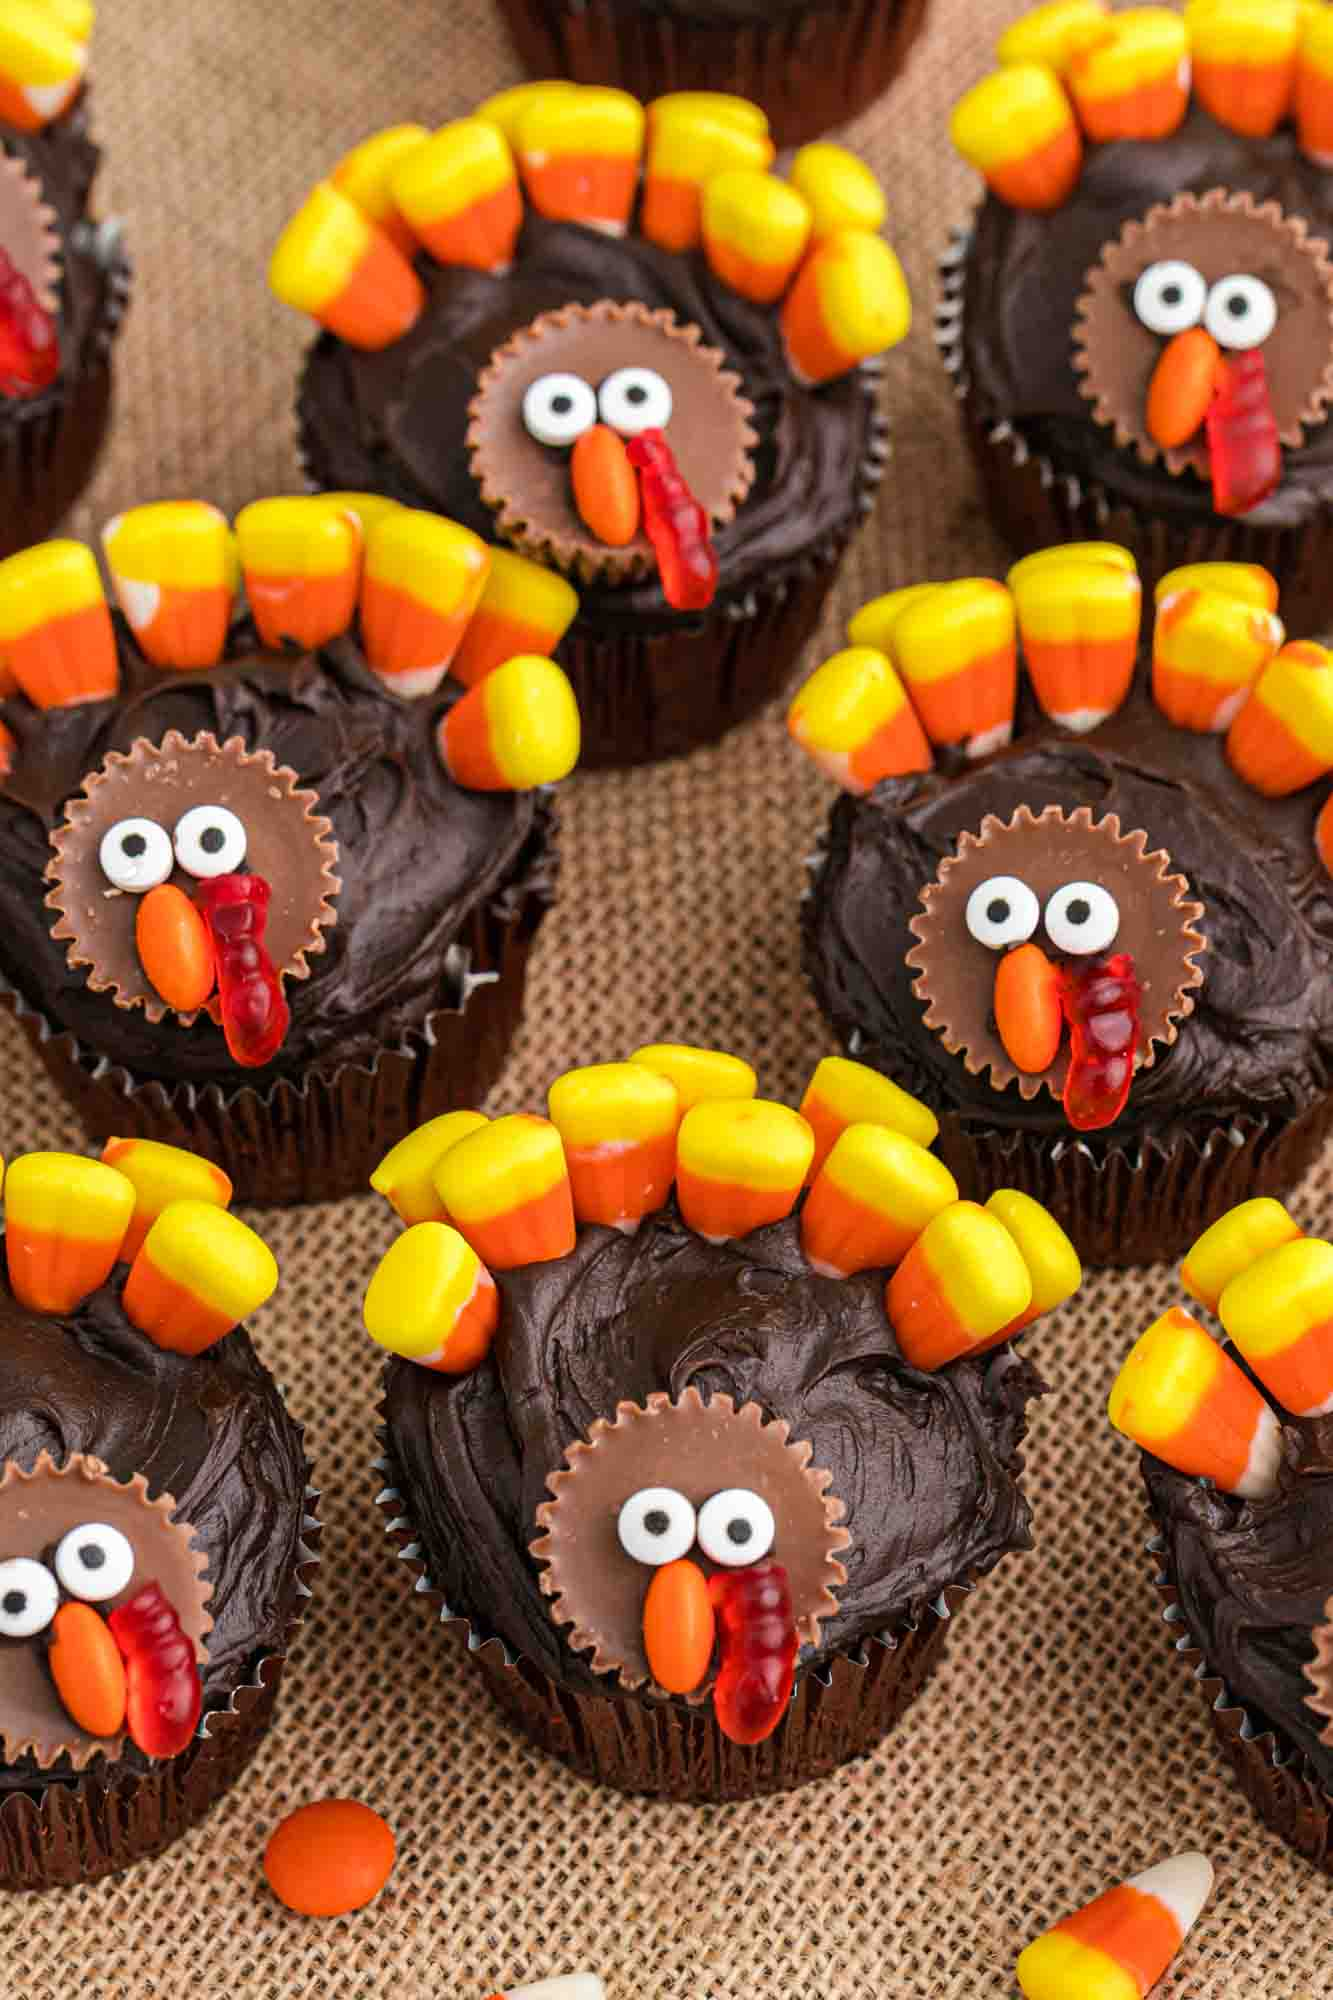 Overhead shot of Turkey cupcakes with candy corn